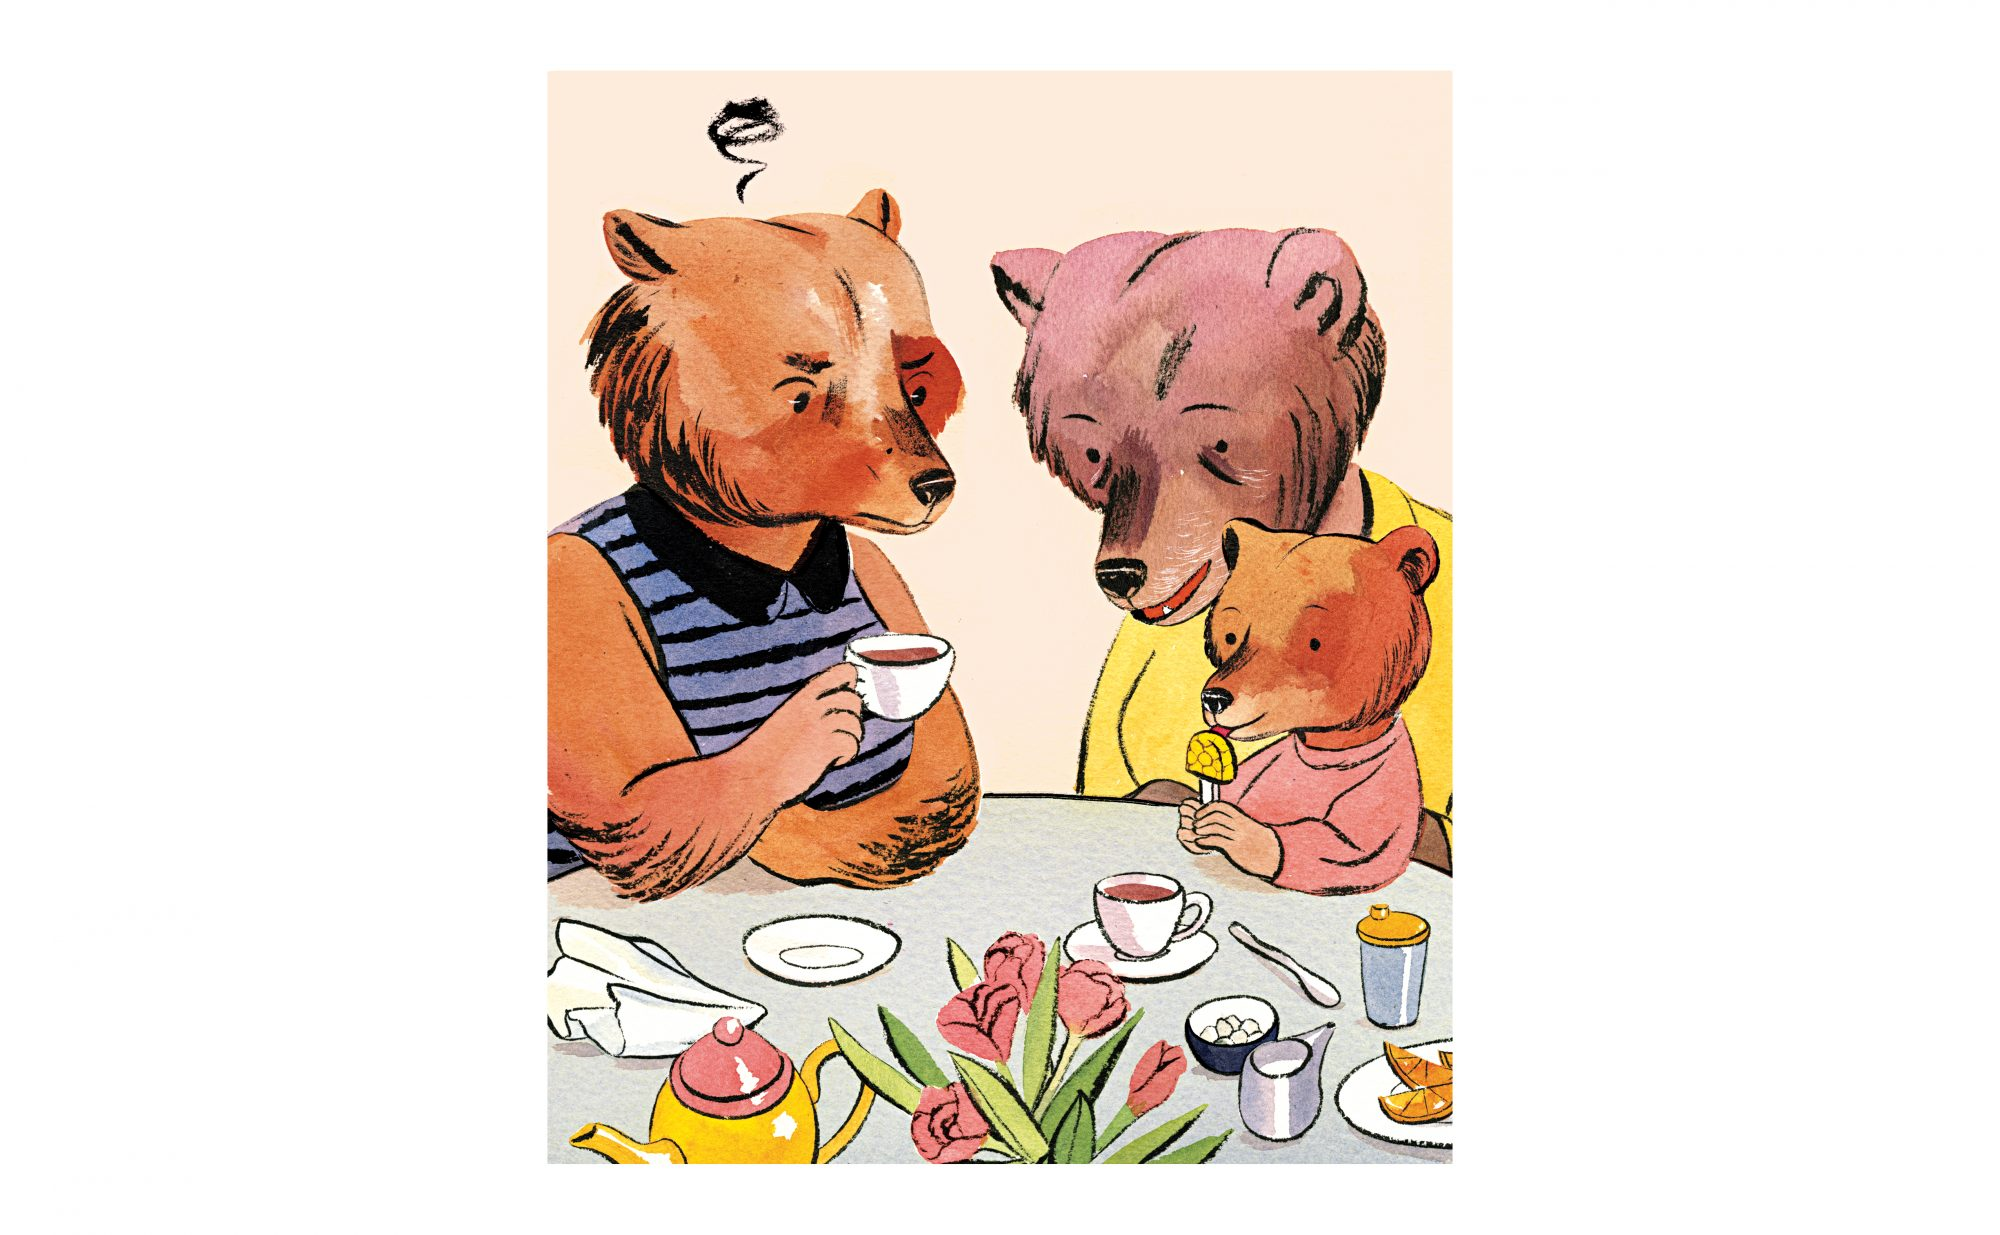 Illustration: family of bears at table